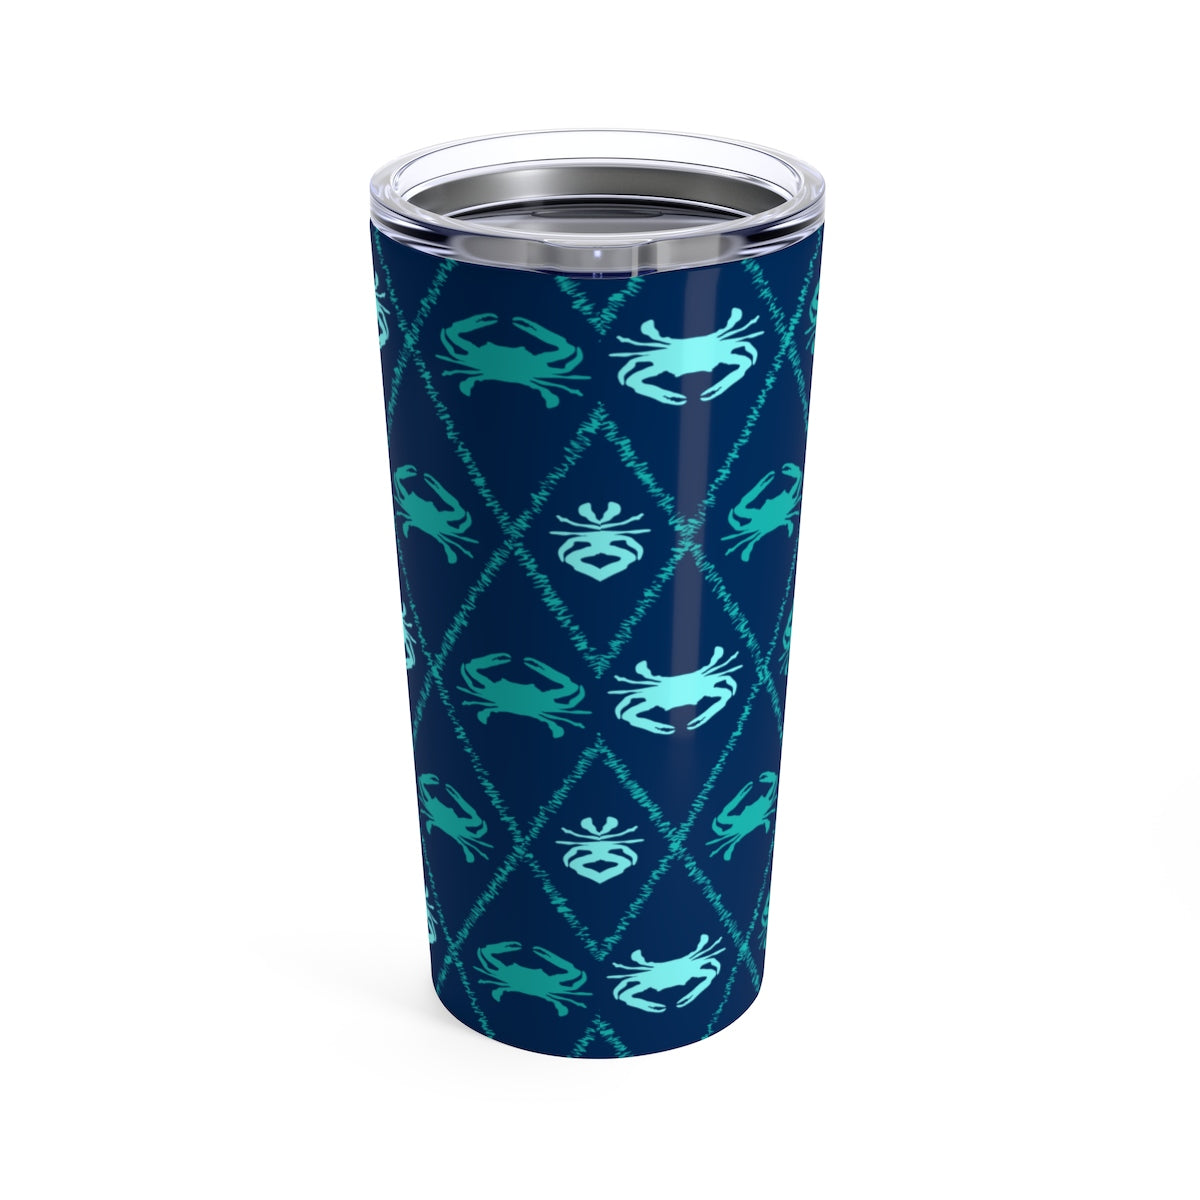 Find Your Coast 20oz Stainless Steel Crabby Tumbler - Find Your Coast Supply Co.